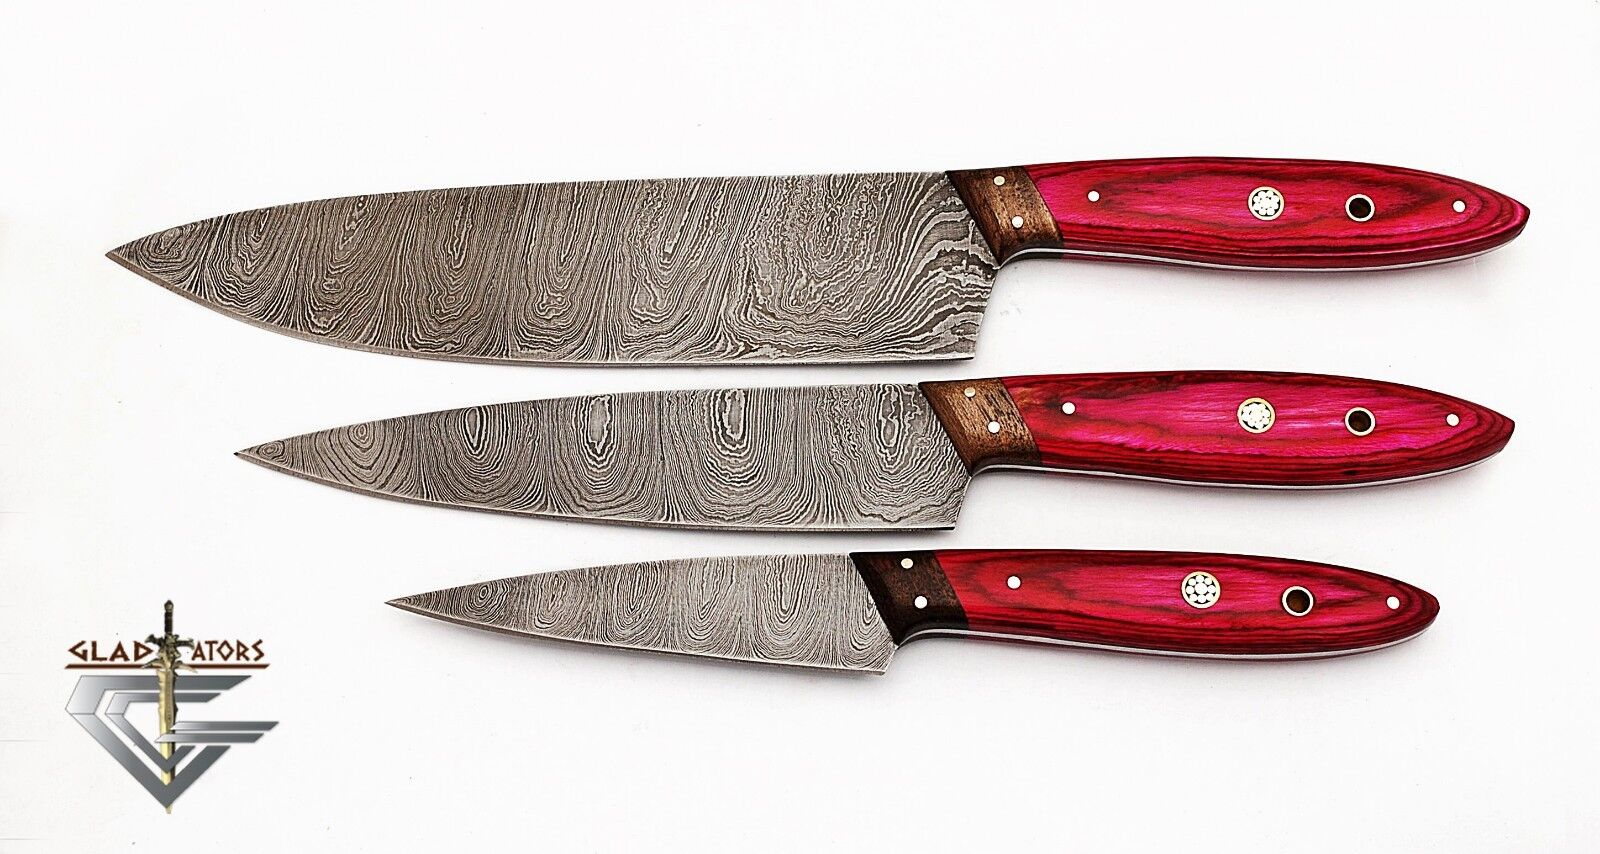 GladiatorsGuild Hand Forged rose 3 pcs Chef Kitchen Knife Set Damascus Steel